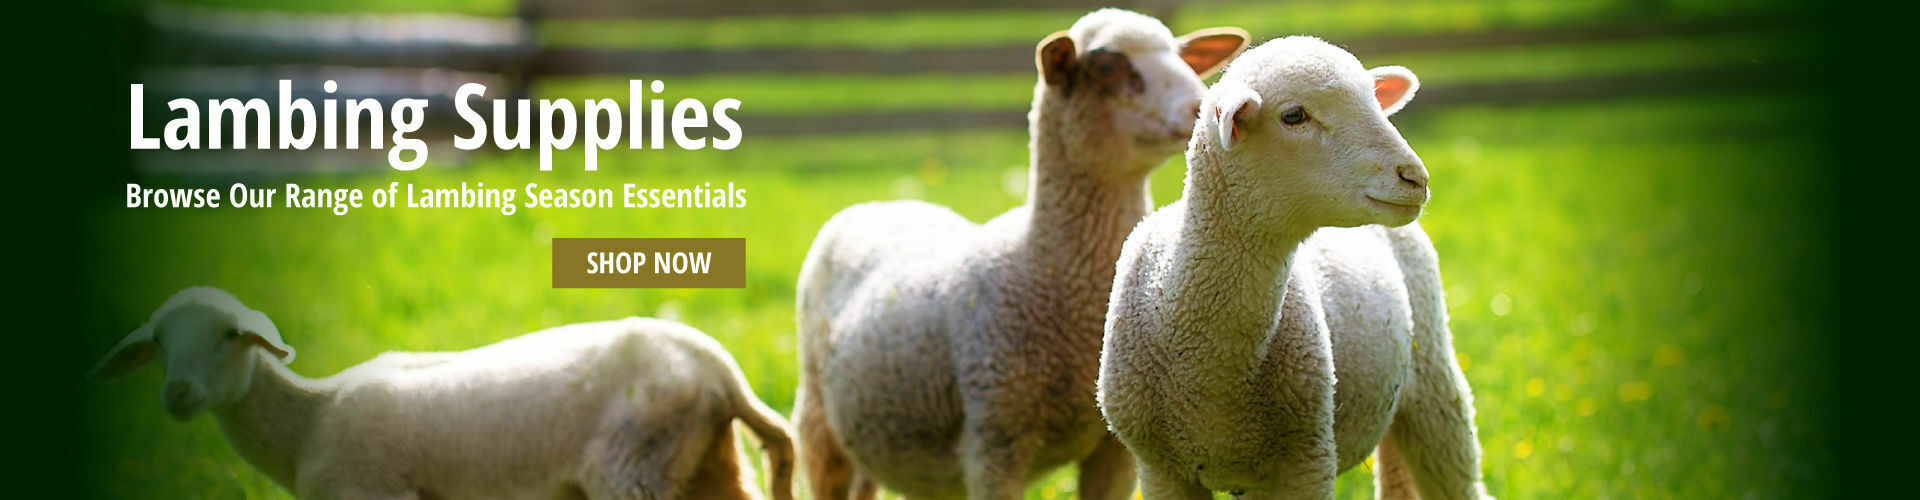 Browse Our Lambing Supplies